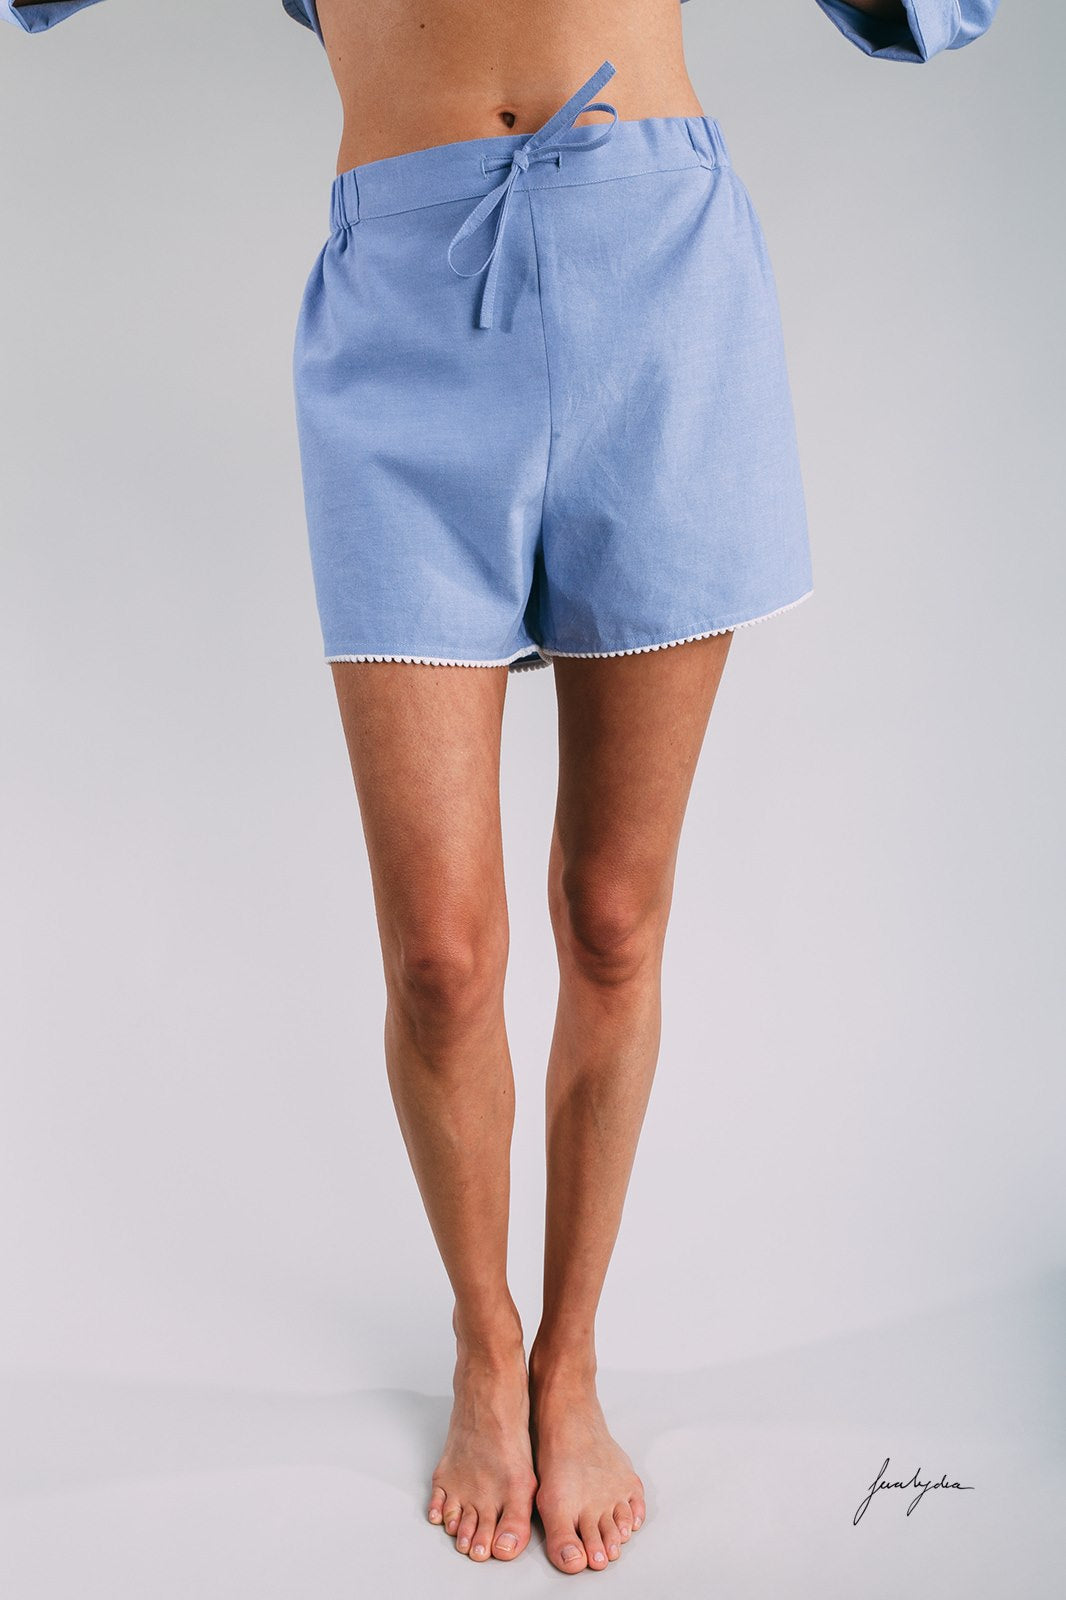 Siân Esther Shorty pyjama set created with blue cotton chambray and pompom trims. These Pjs make a perfect gift for a honeymoon, night before the wedding, special birthdays or Mother's Day. Luxe lounging in these pajamas.